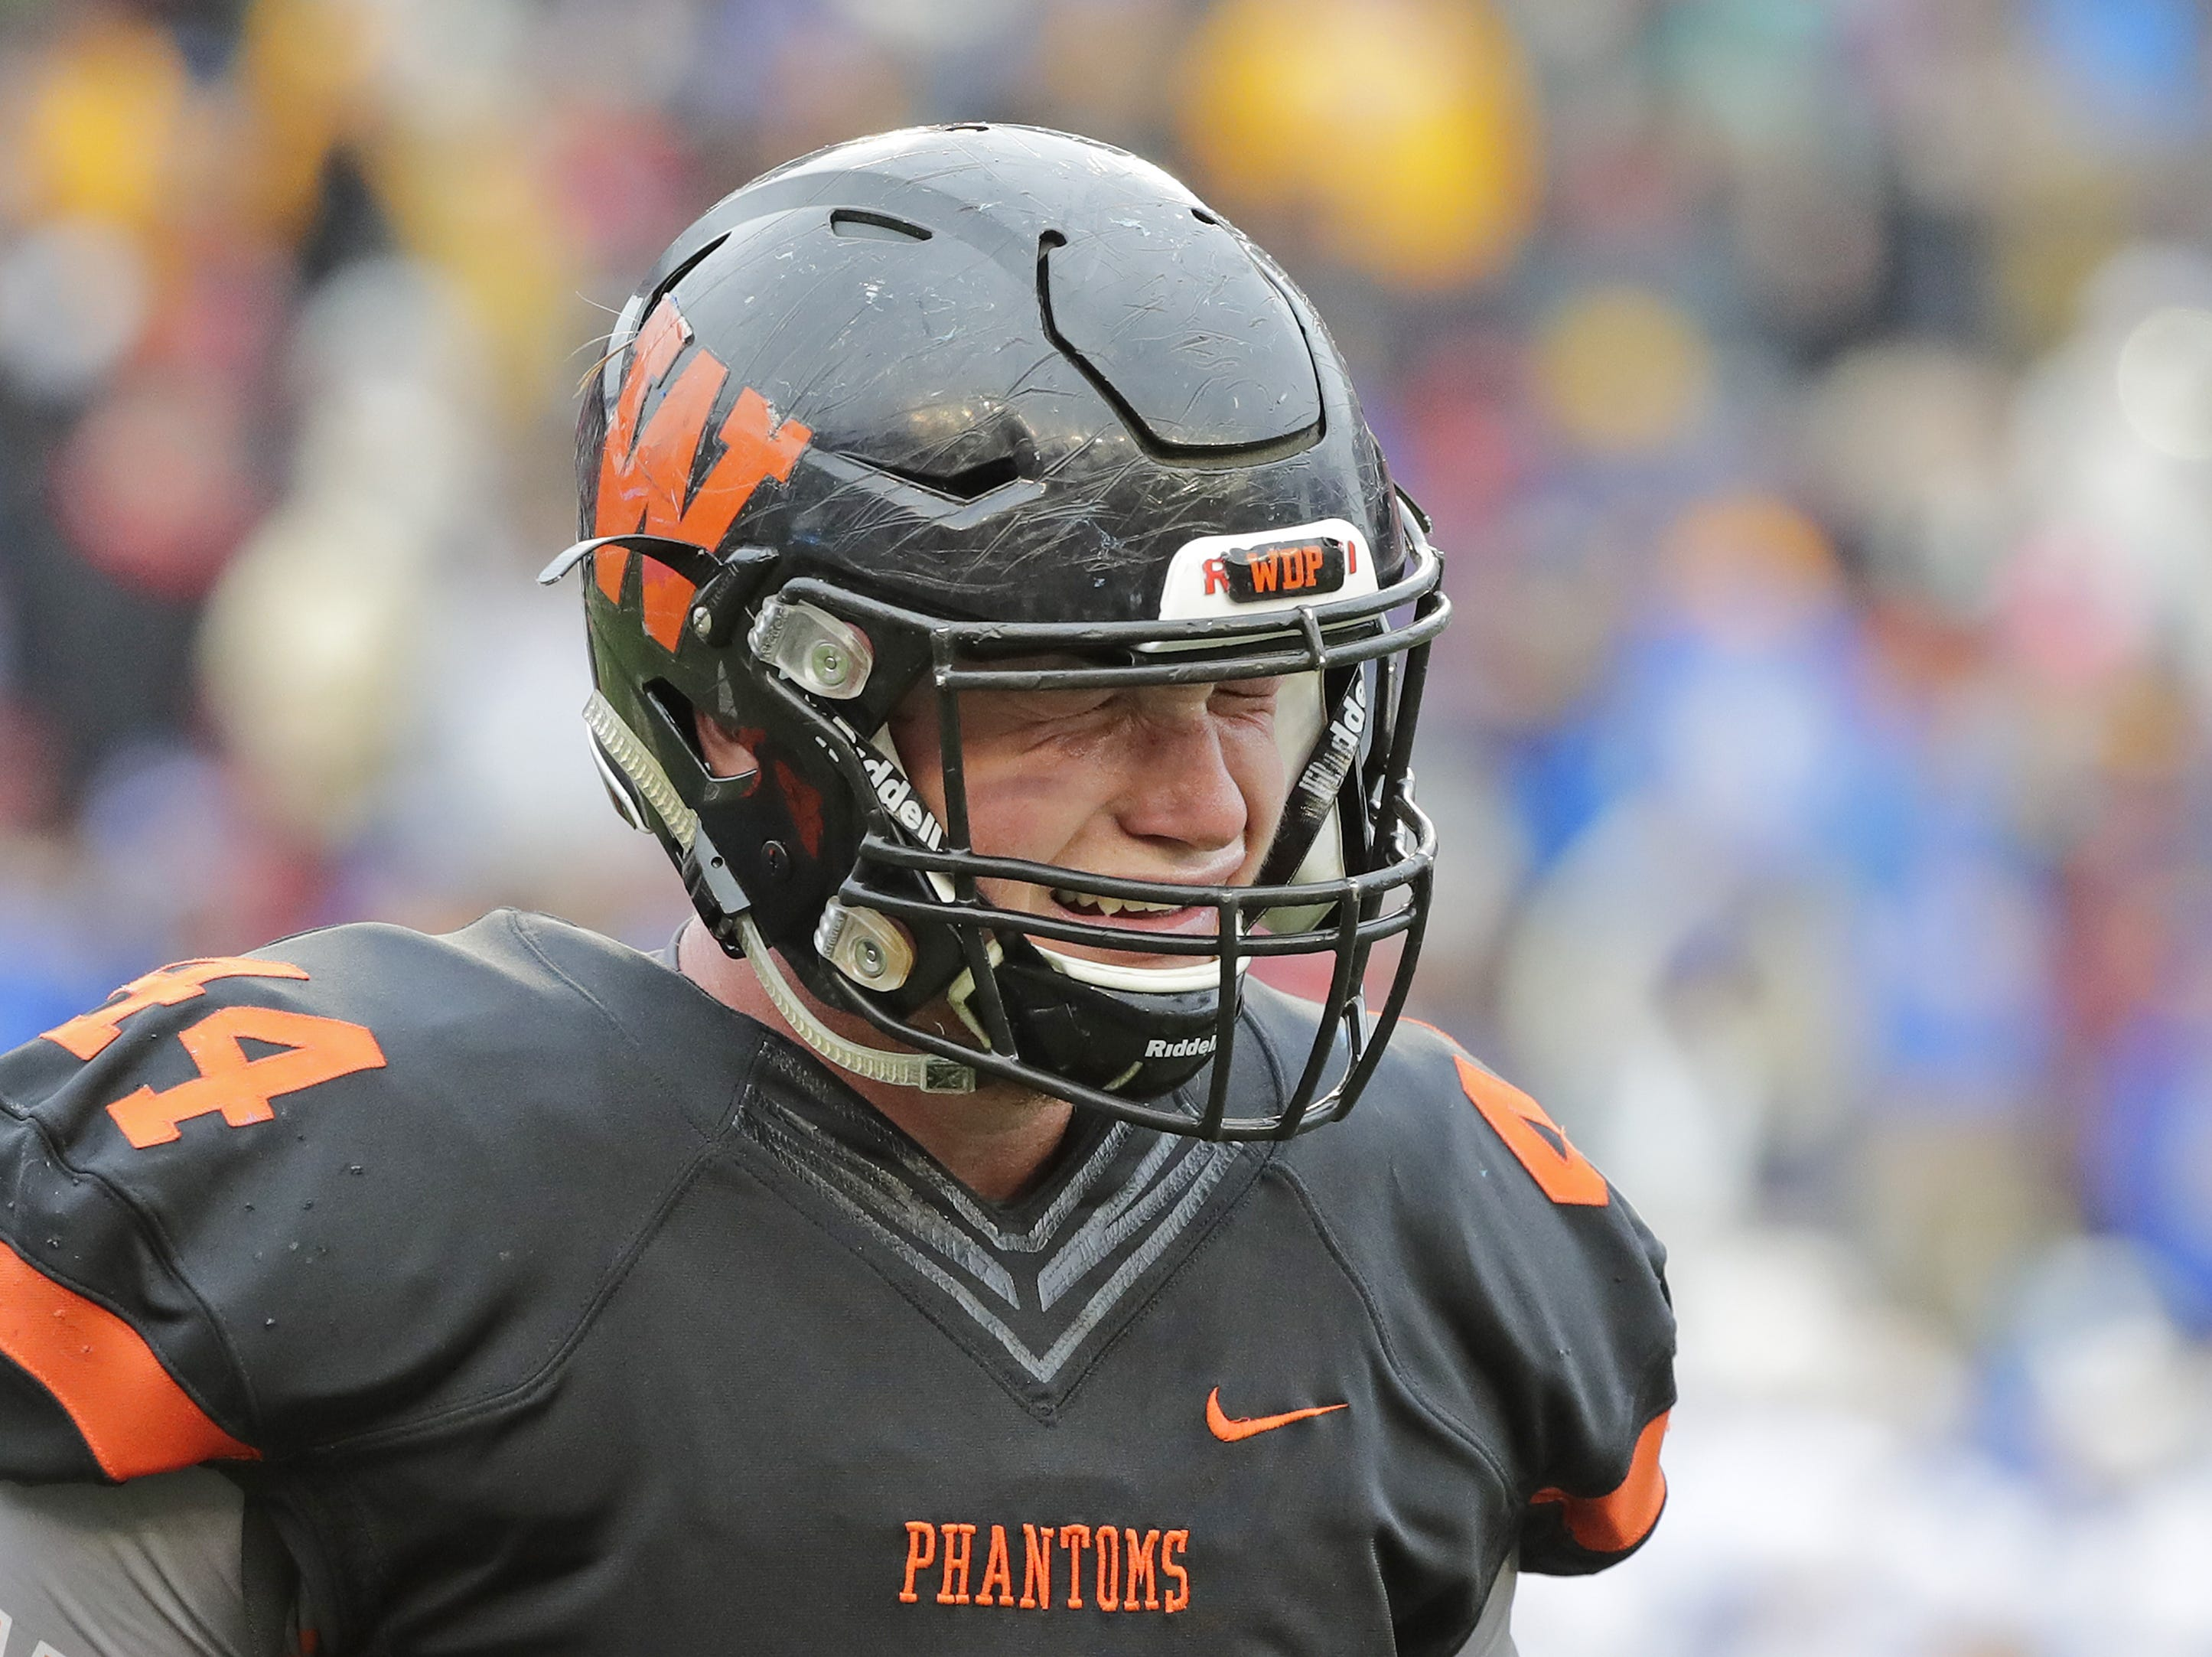 West De Pere's Jake Karchinski (44) walks off the field after the Phantoms lost to Catholic Memorial in the WIAA Division 3 championship game at Camp Randall Stadium on Friday, November 16, 2018 in Madison, Wis.